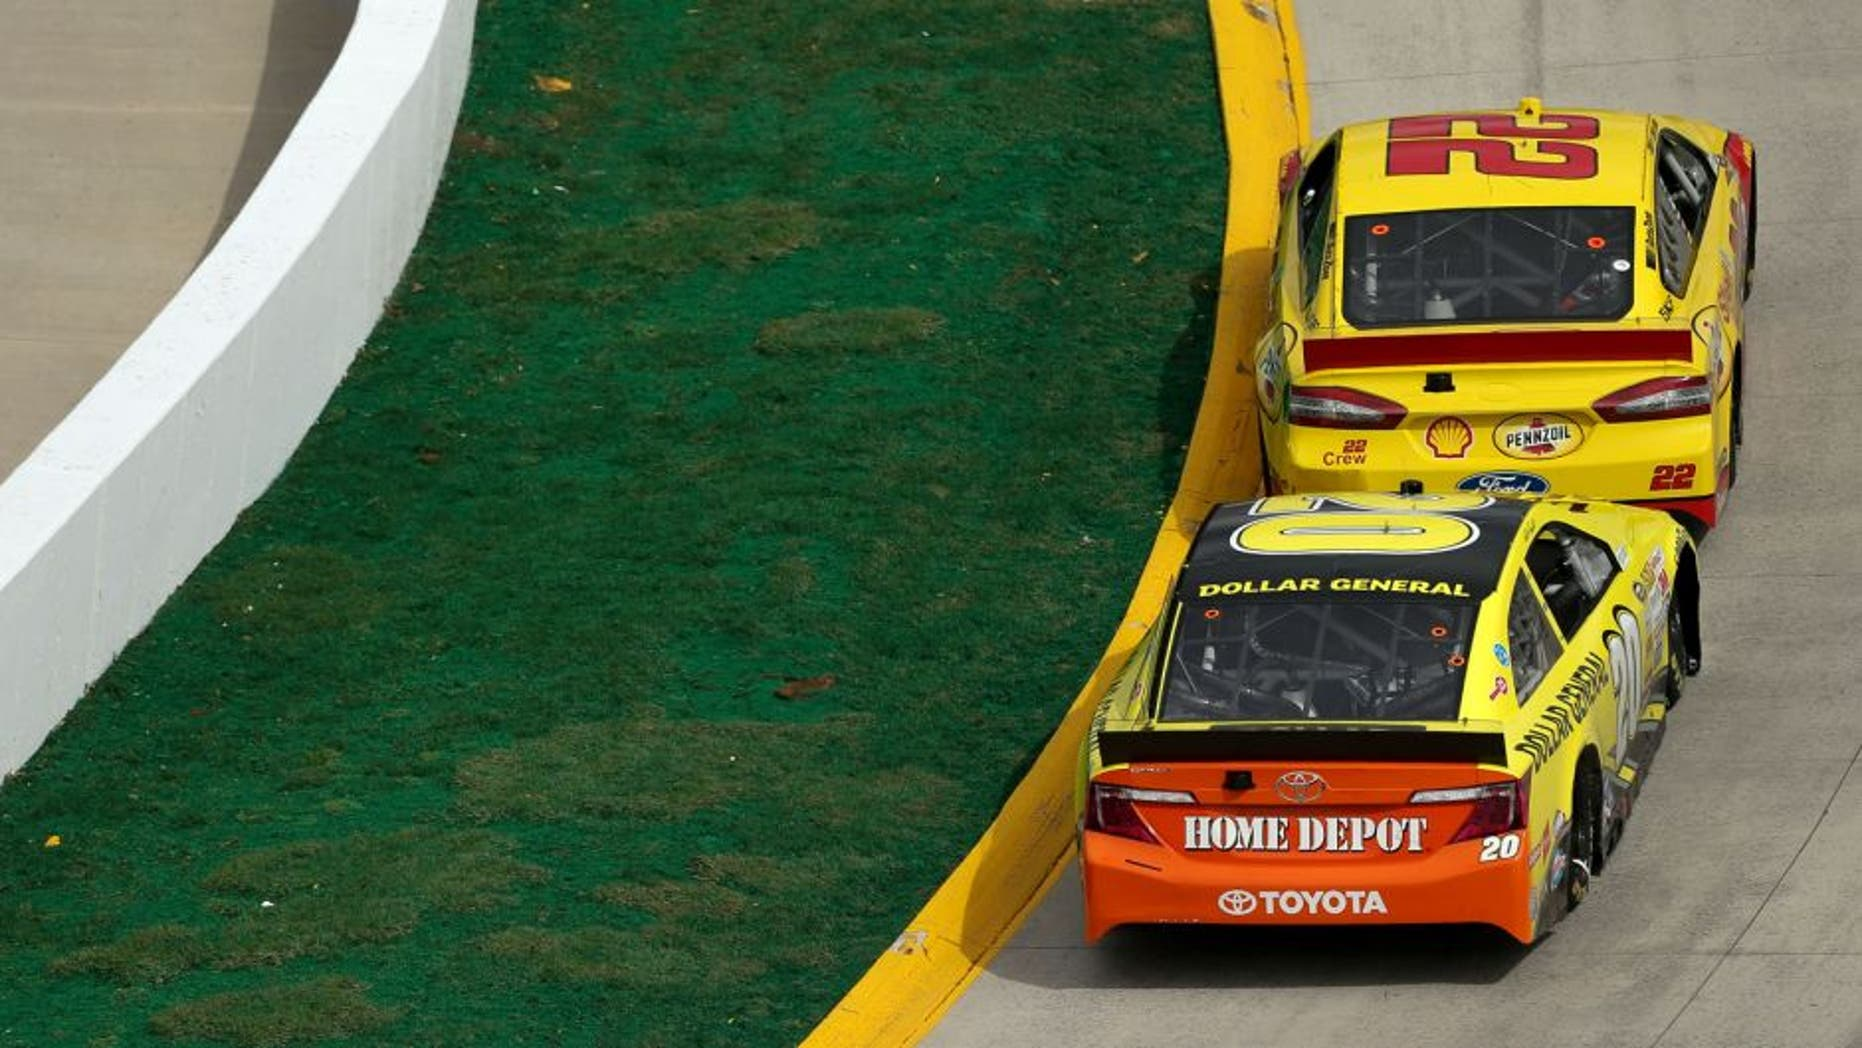 Joey Logano, driver of the #22 Shell-Pennzoil Ford, races with Matt Kenseth, driver of the #20 Dollar General Toyota, during the NASCAR Sprint Cup Series STP 500 at Martinsville Speedway on March 30, 2014 in Martinsville, Virginia.